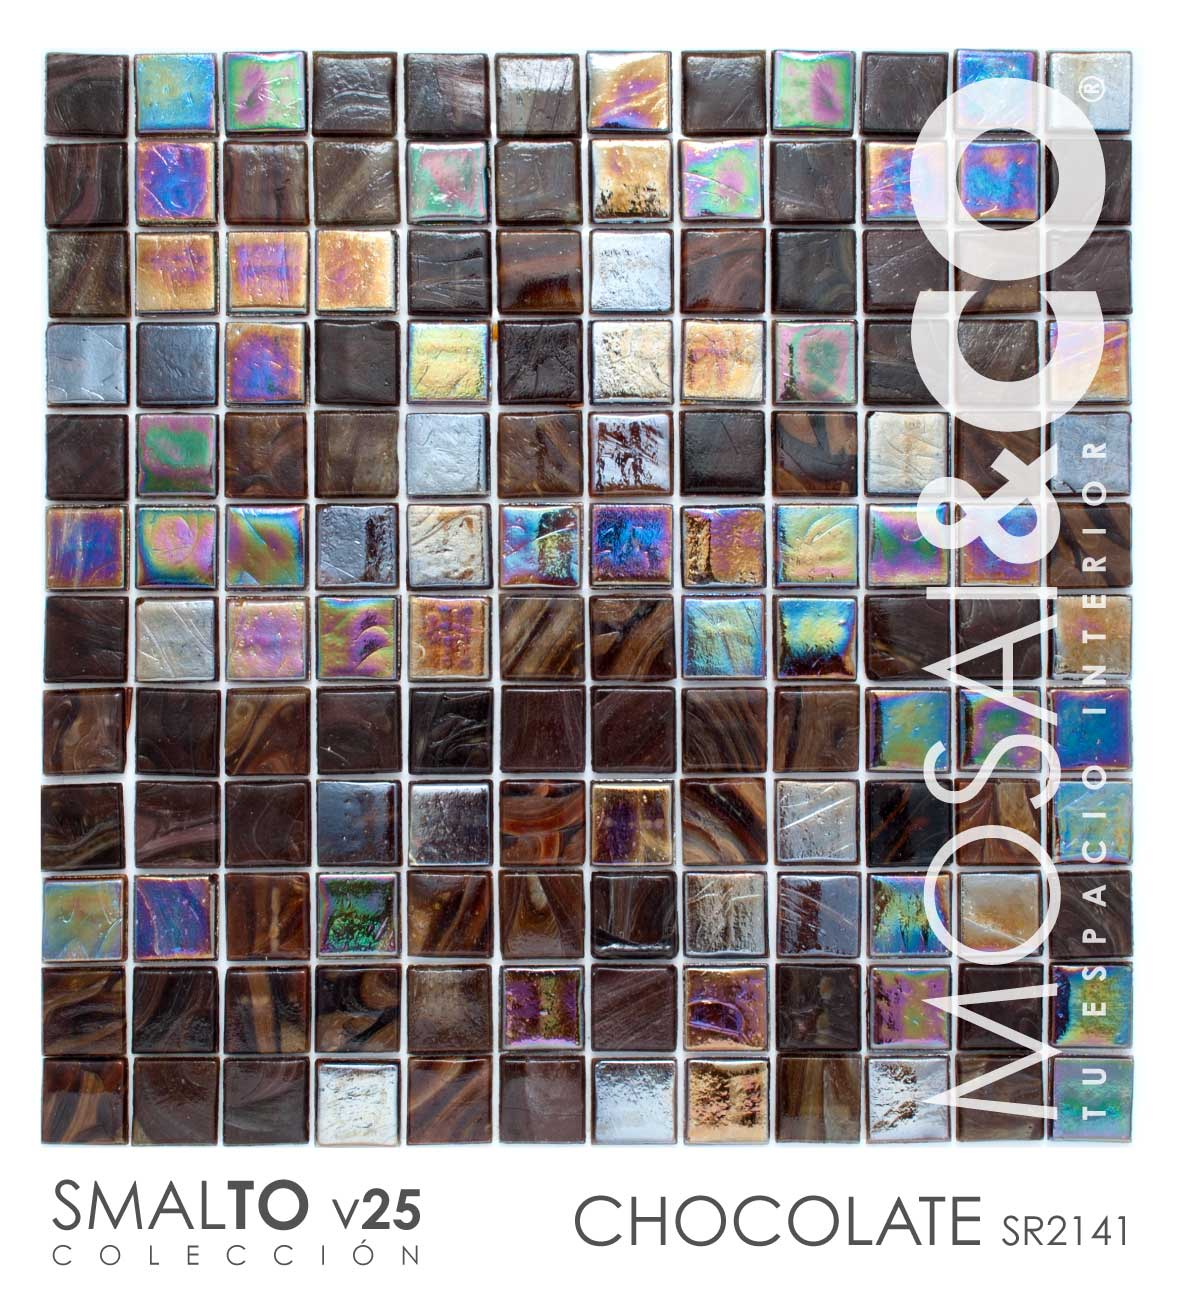 mosaico-interiores-mosaiandco-smalto-v25-chocolate-sr2141